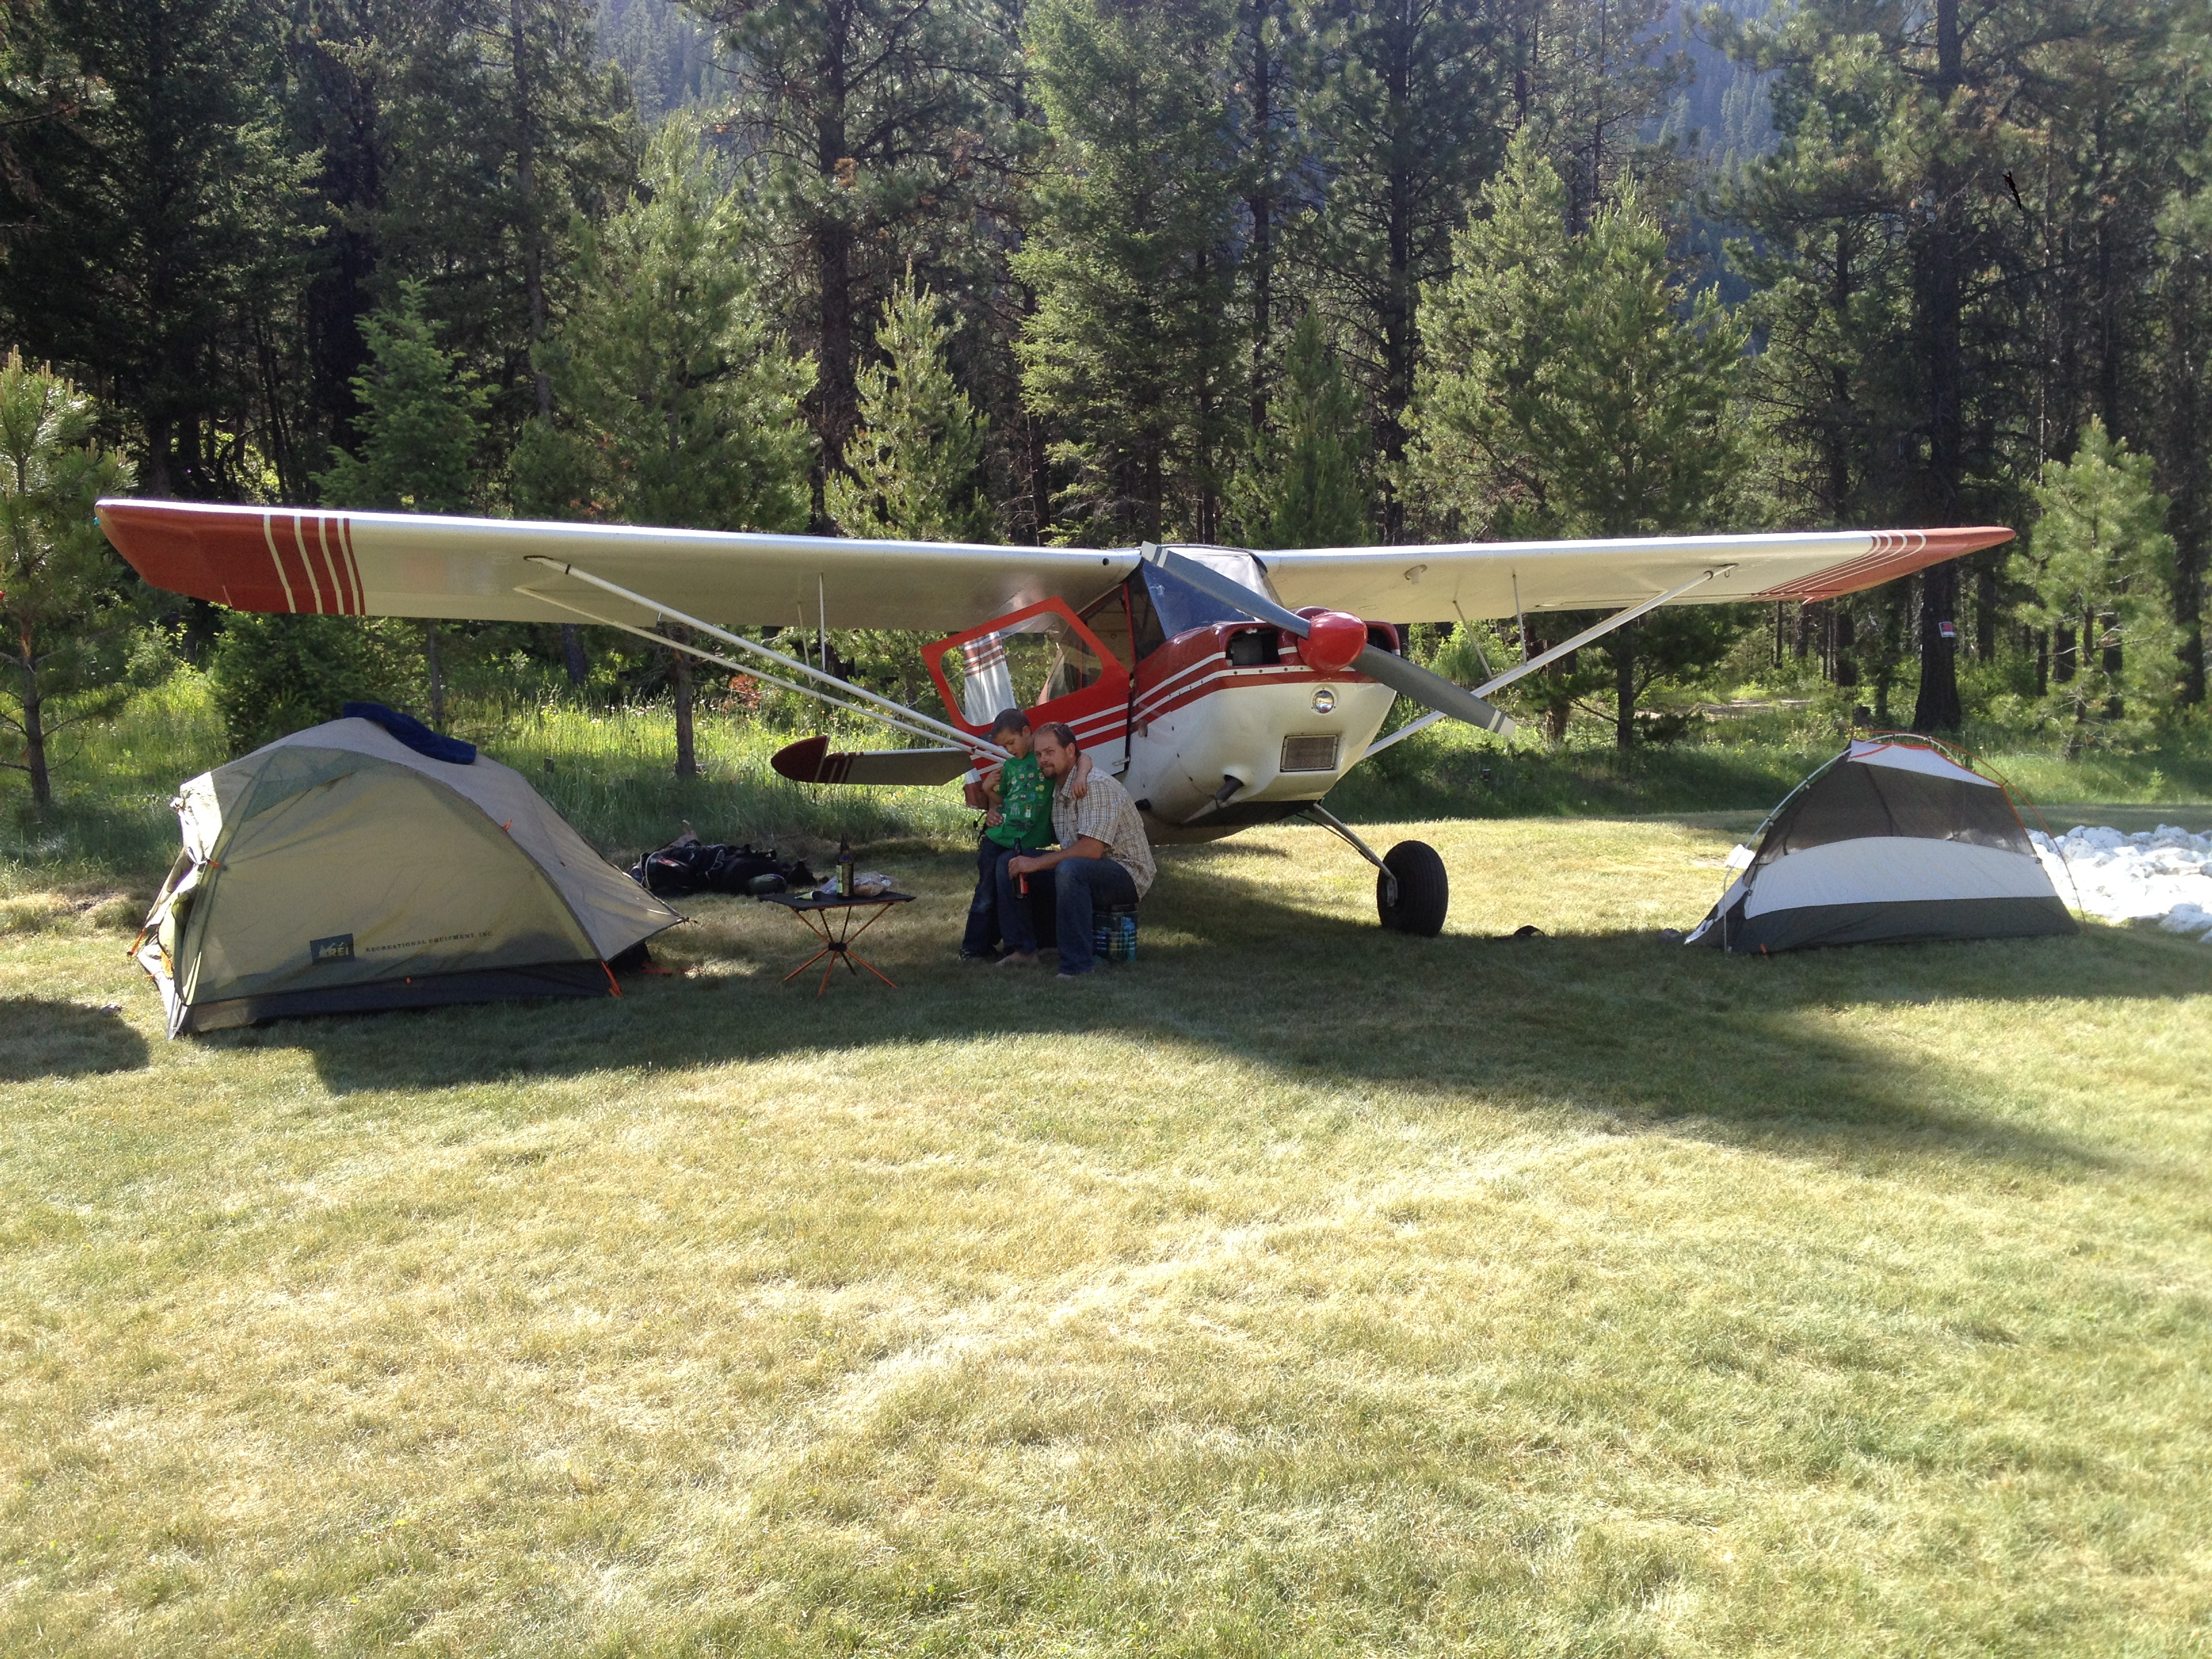 Airplane camping in Idaho